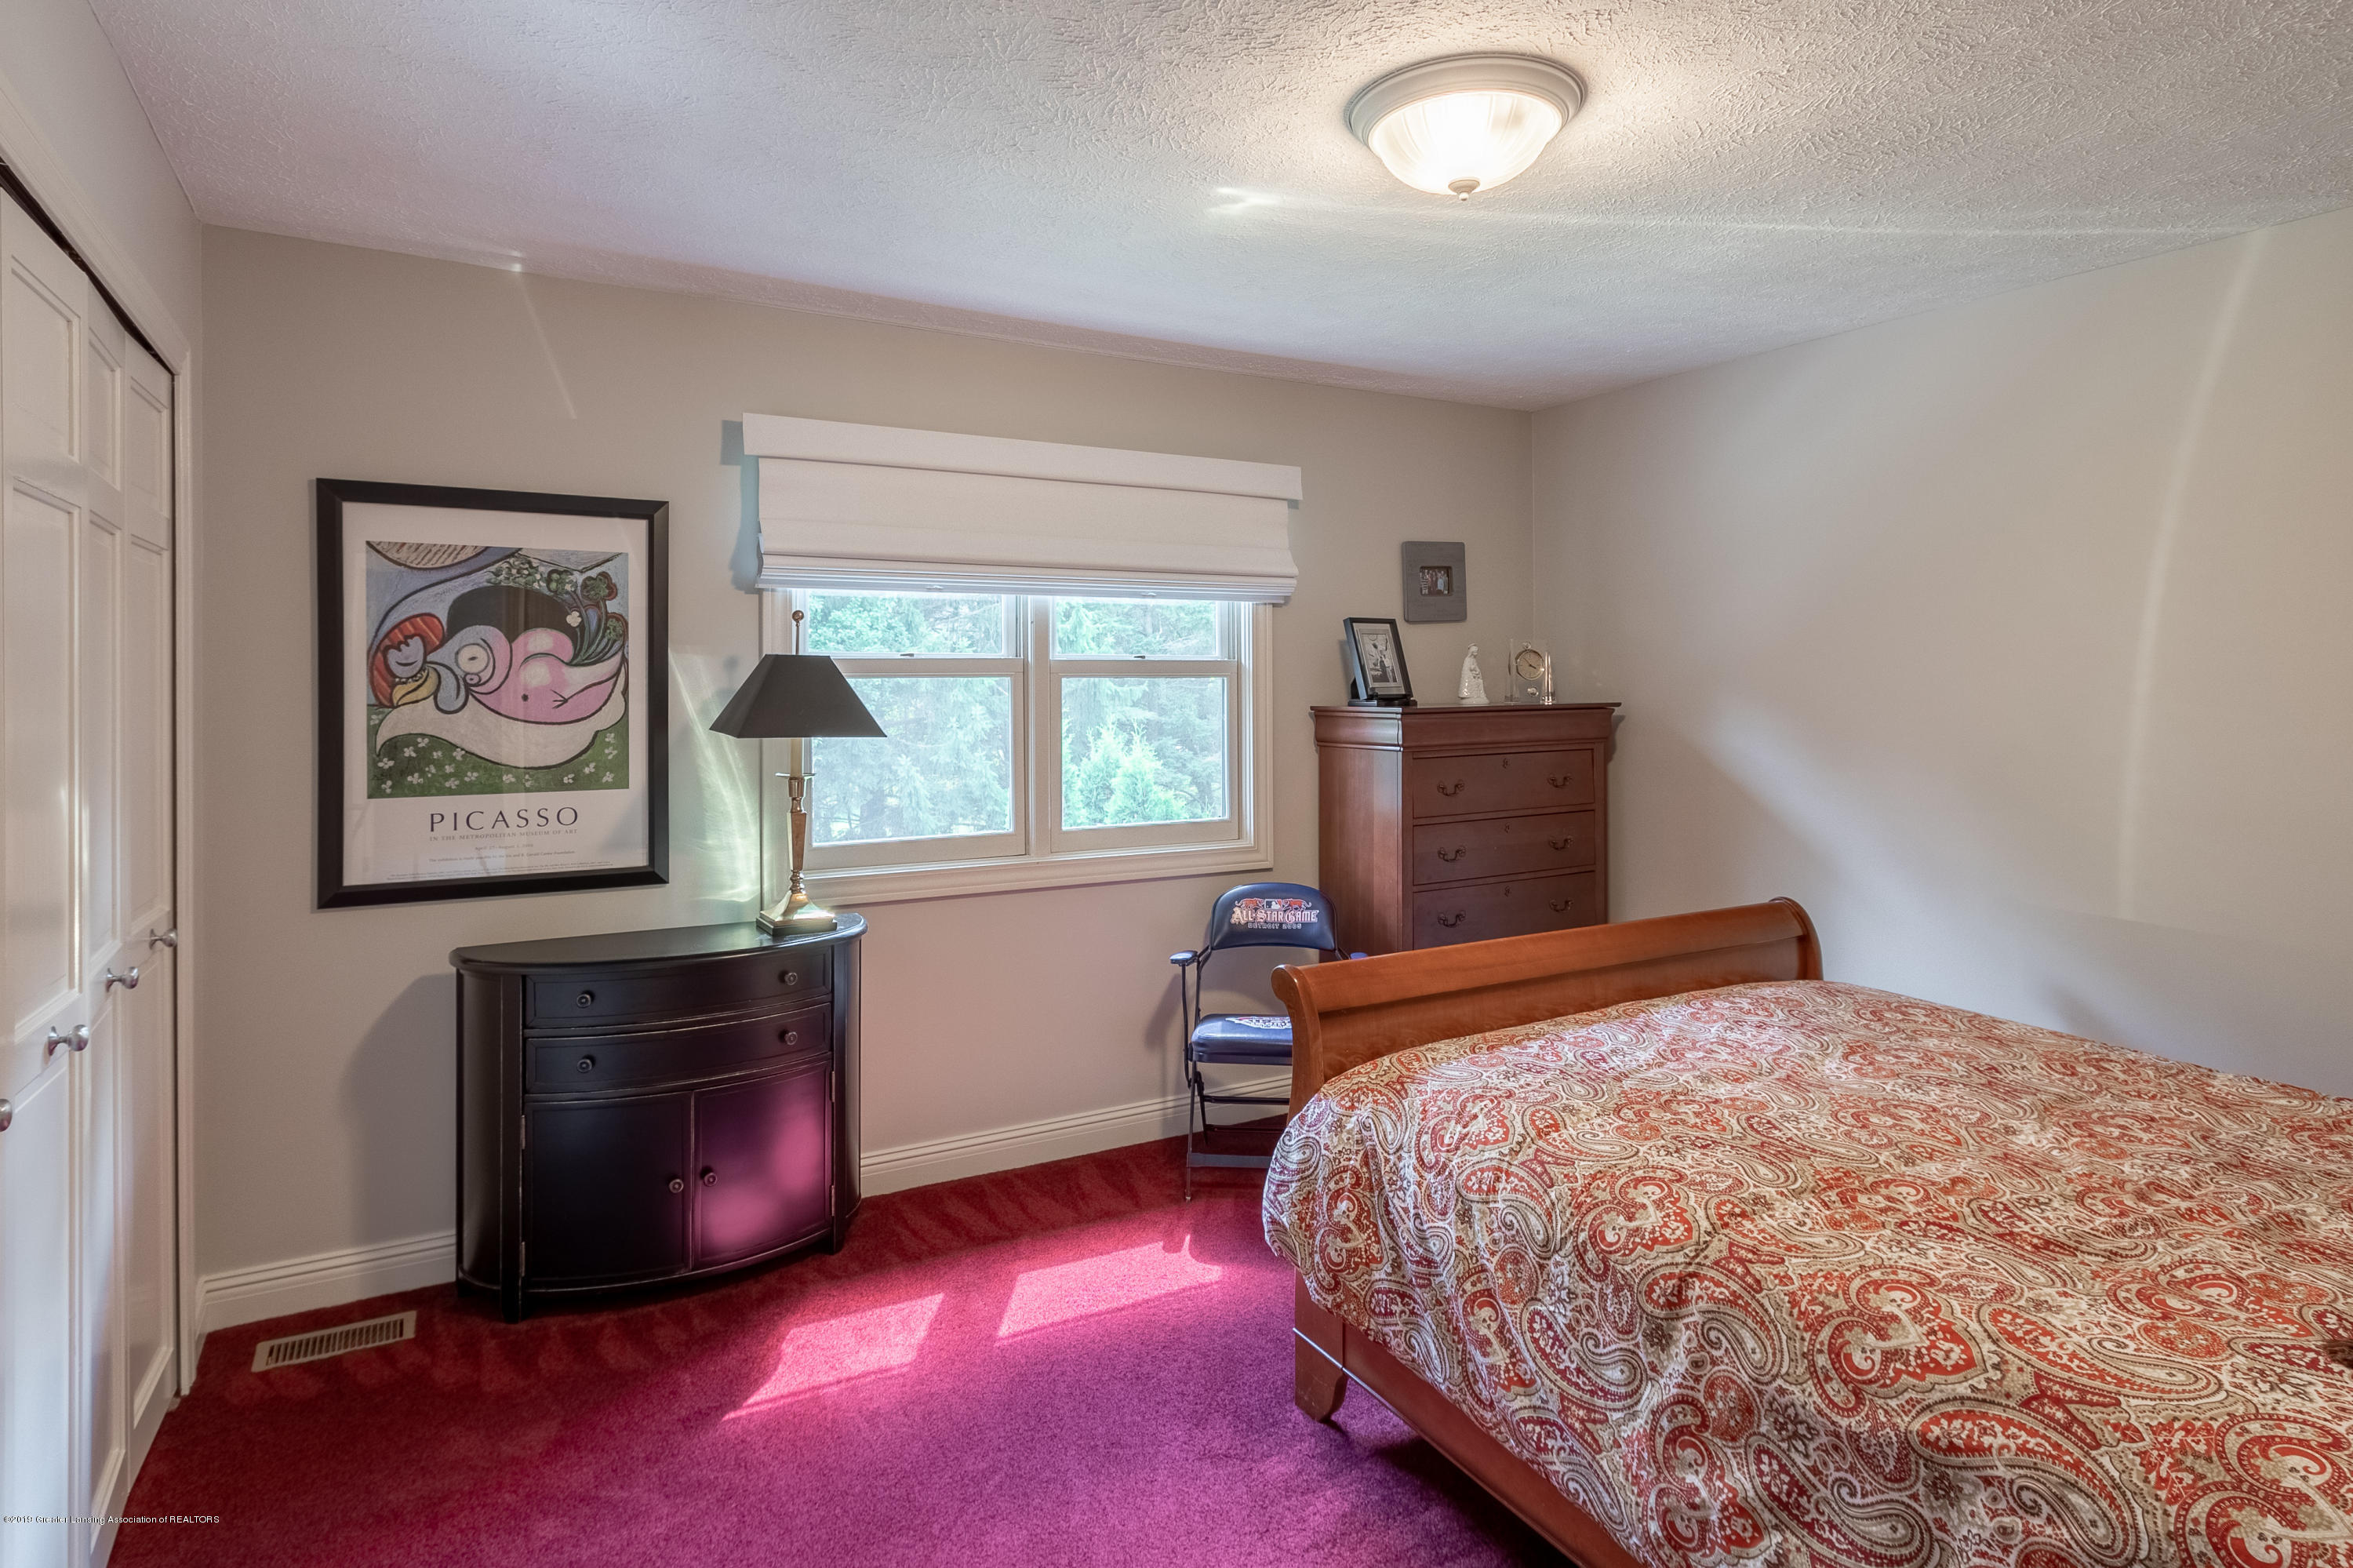 2133 Woodfield Rd - Bedroom - 38